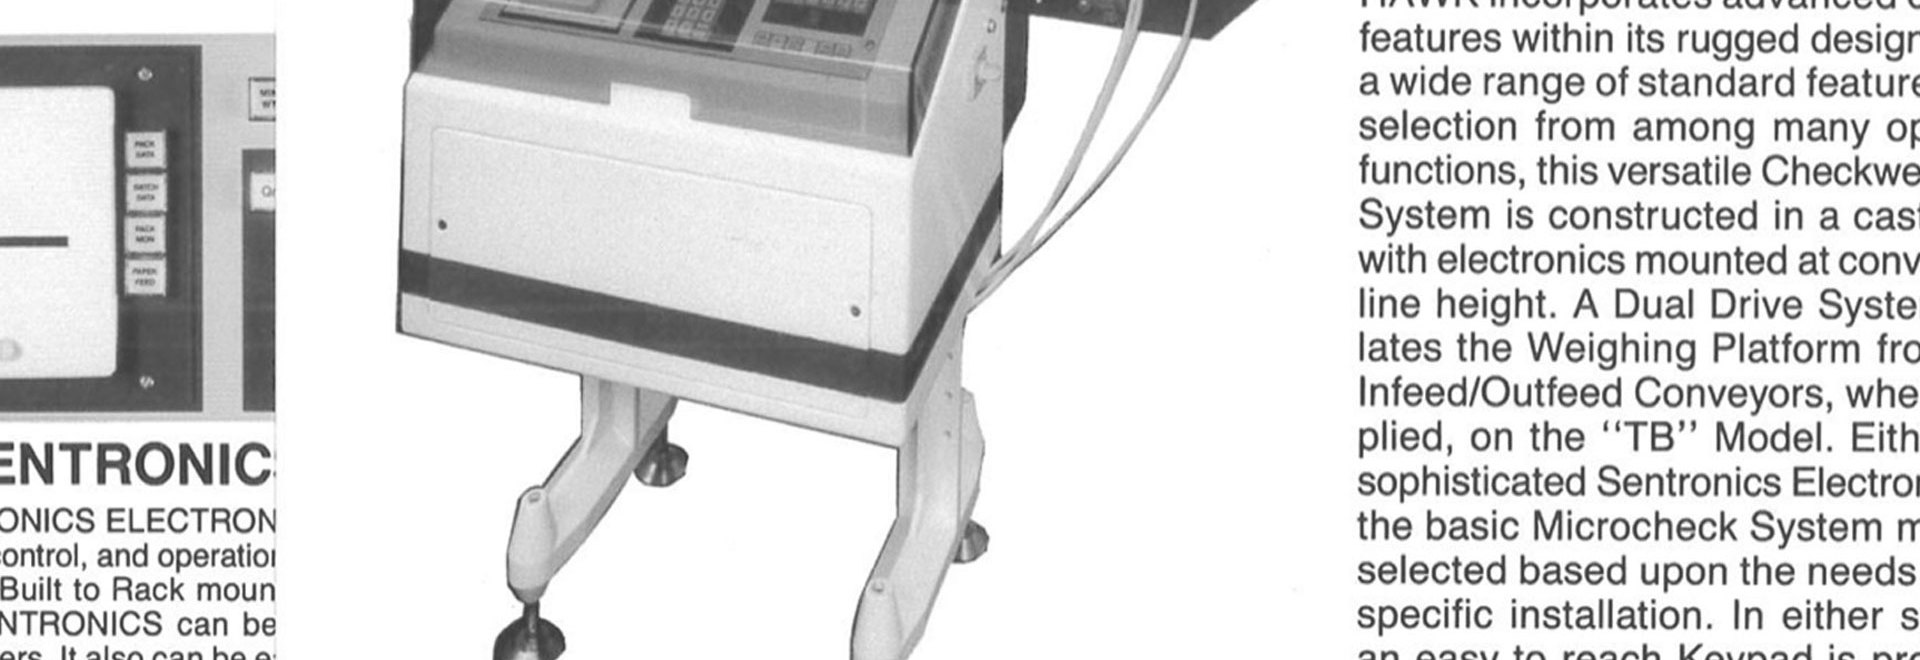 CHECKWEIGHERS, PRIOR TO ALPHA